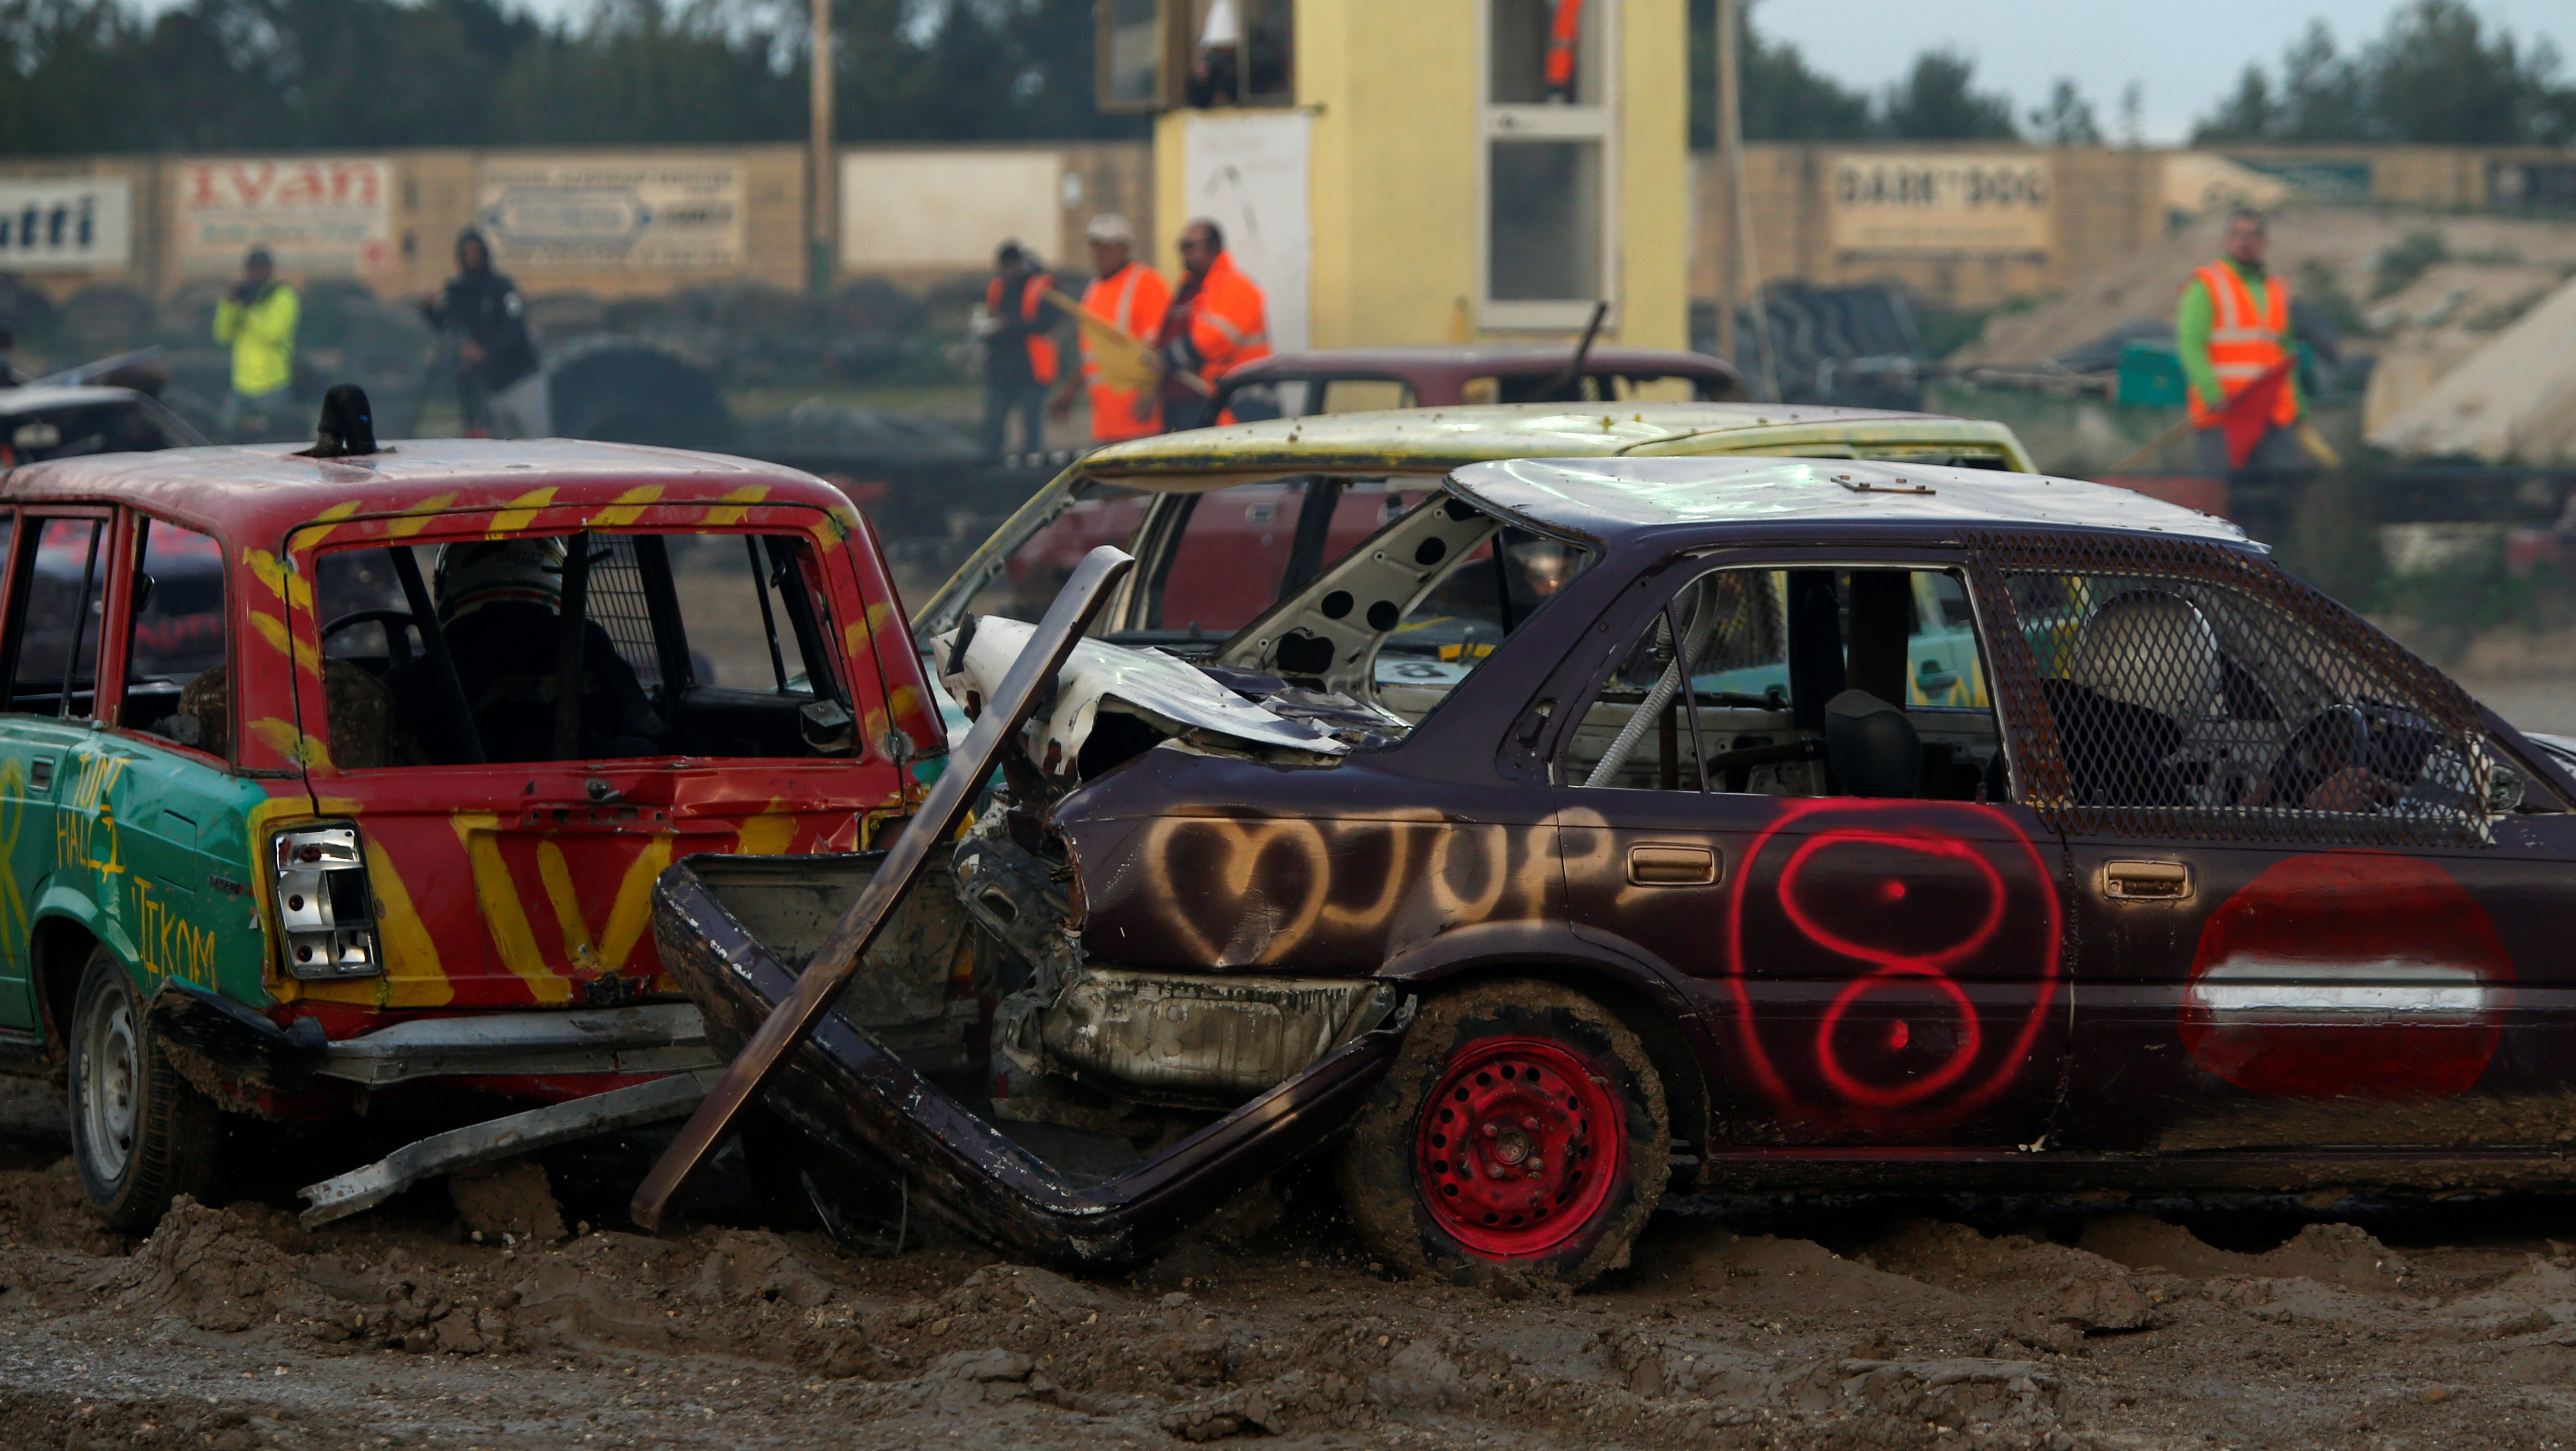 Drivers take part in a demolition derby organised by the Malta Motor Sports Association to raise funds for charity in Ta' Qali, outside Valletta, Malta, January 8, 2017. REUTERS/Darrin Zammit Lupi - RTX2XZMZ